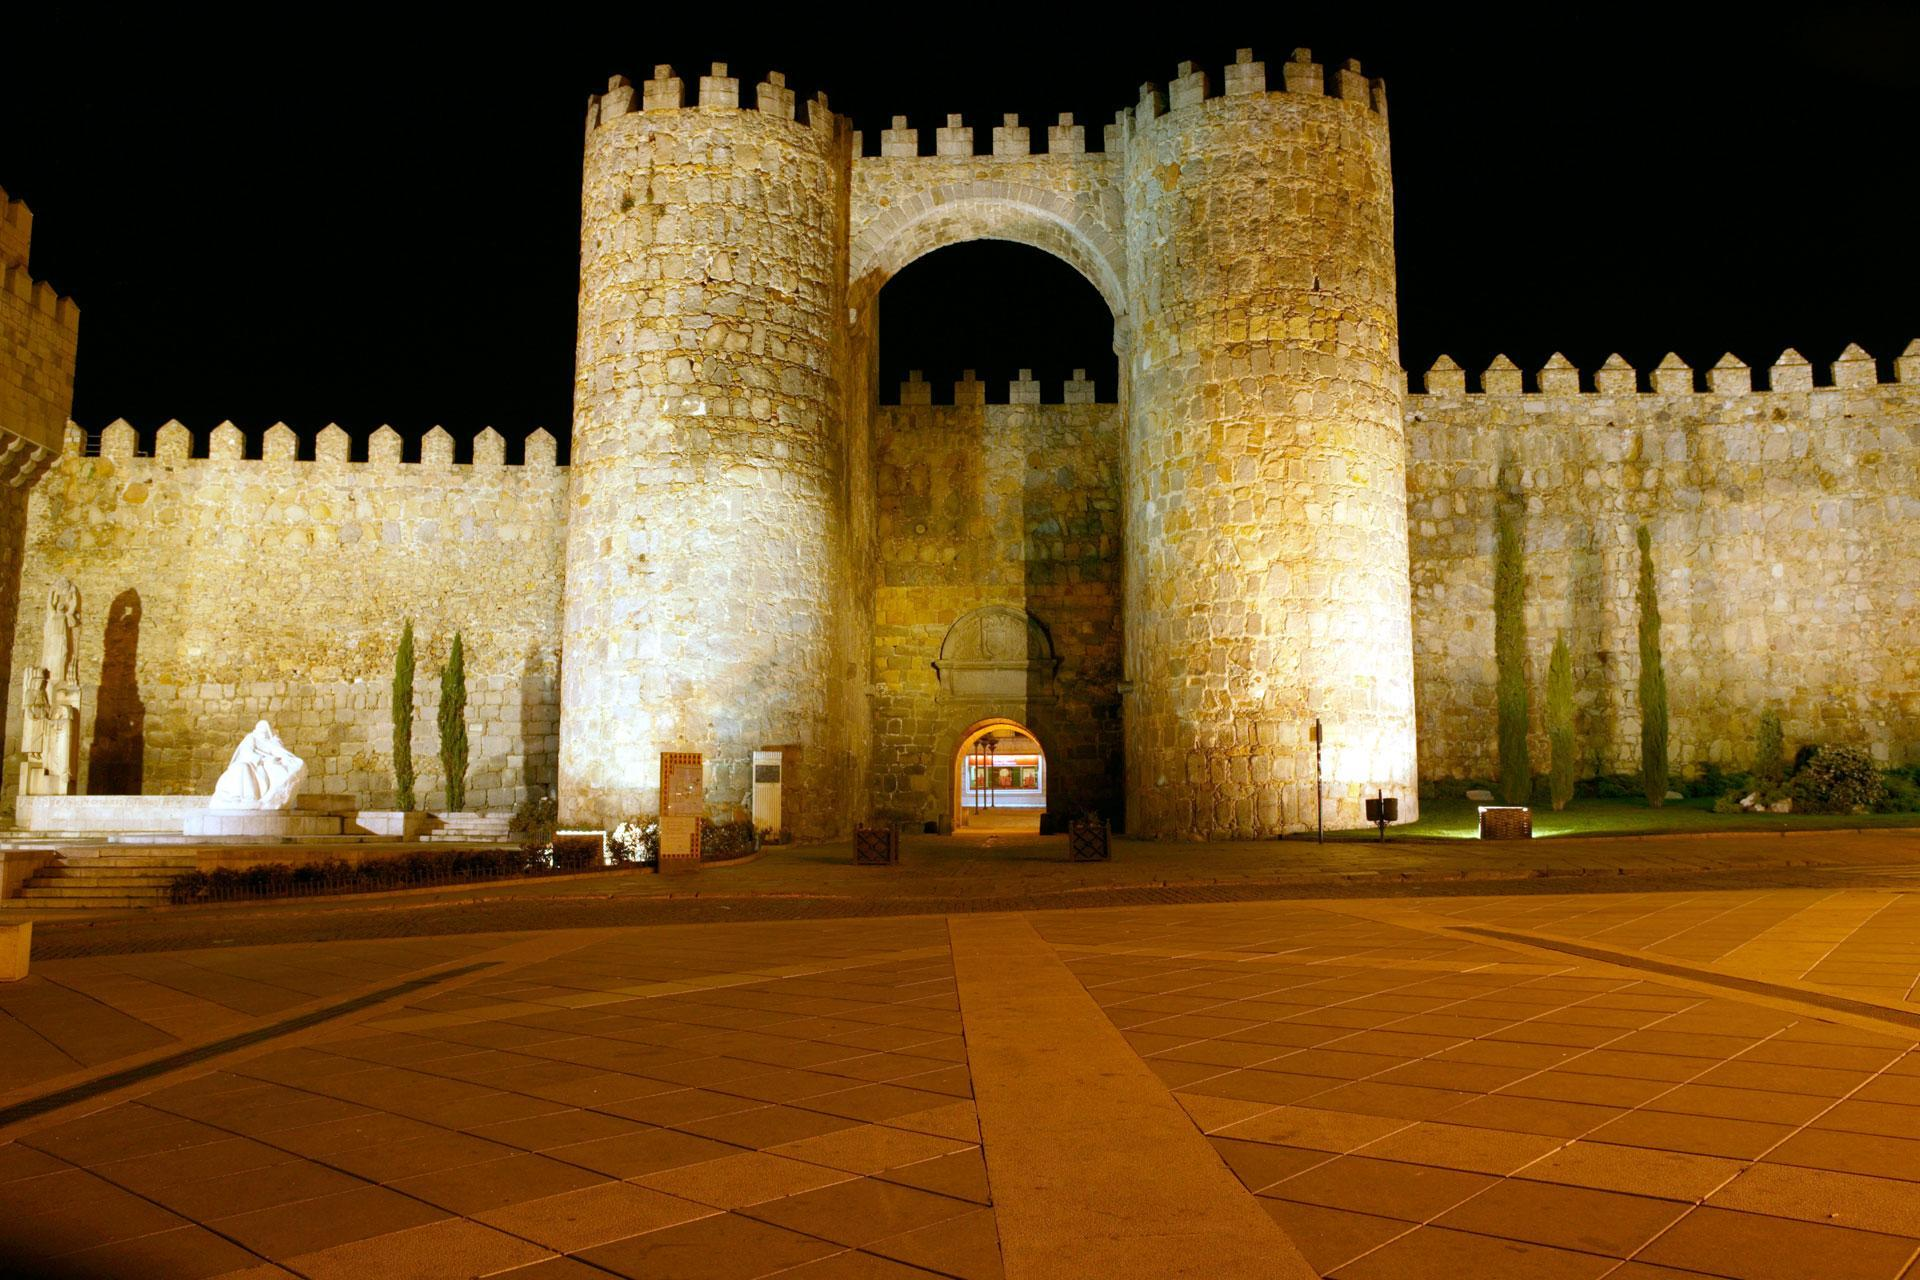 Ávila: RELIGIOSITY, HISTORY AND TRADITION